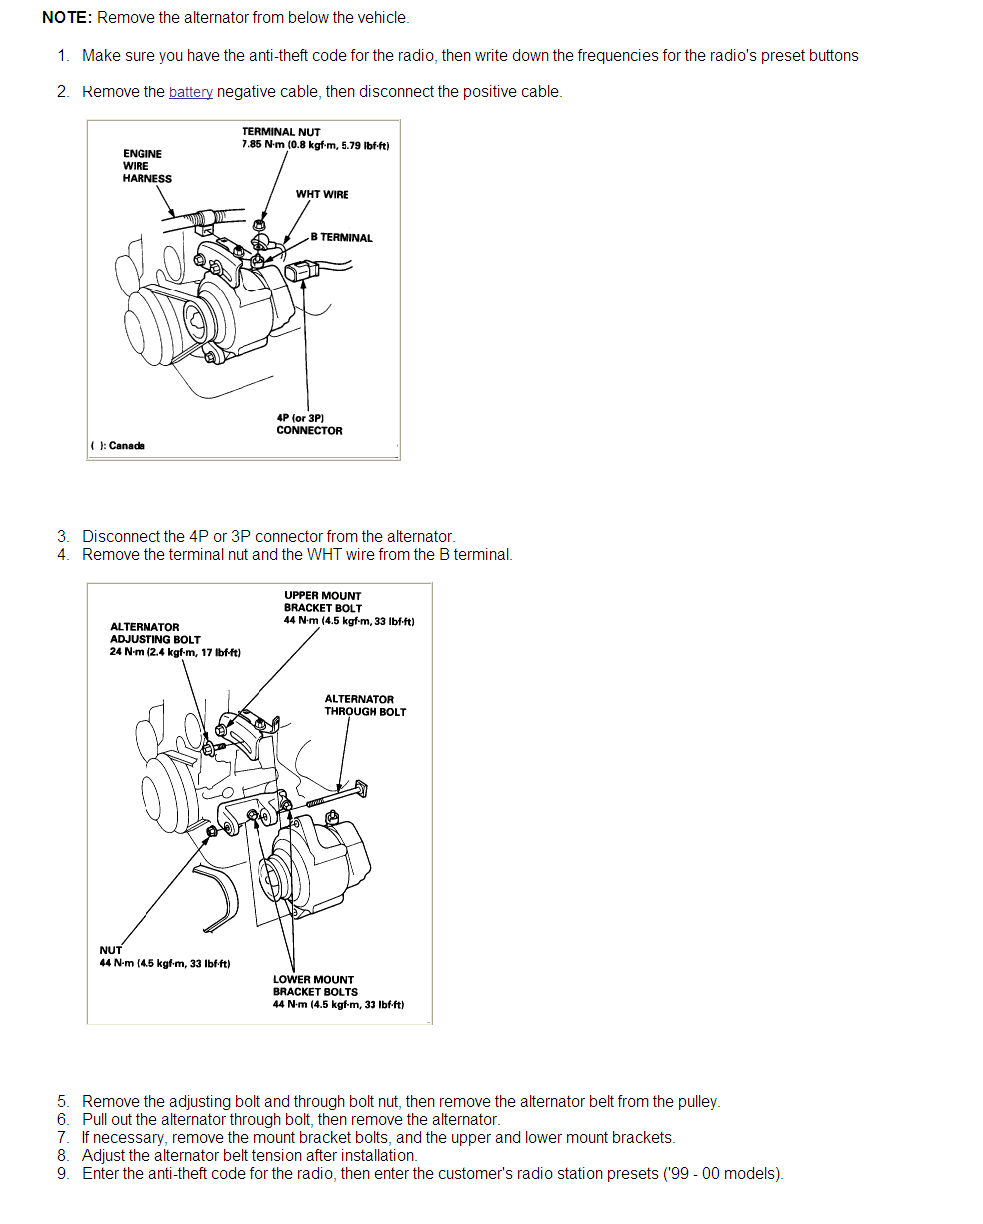 How Do You Remove And Replace The Alternator On A 2000 Honda Civic To Disconnect Wiring Harness Graphic